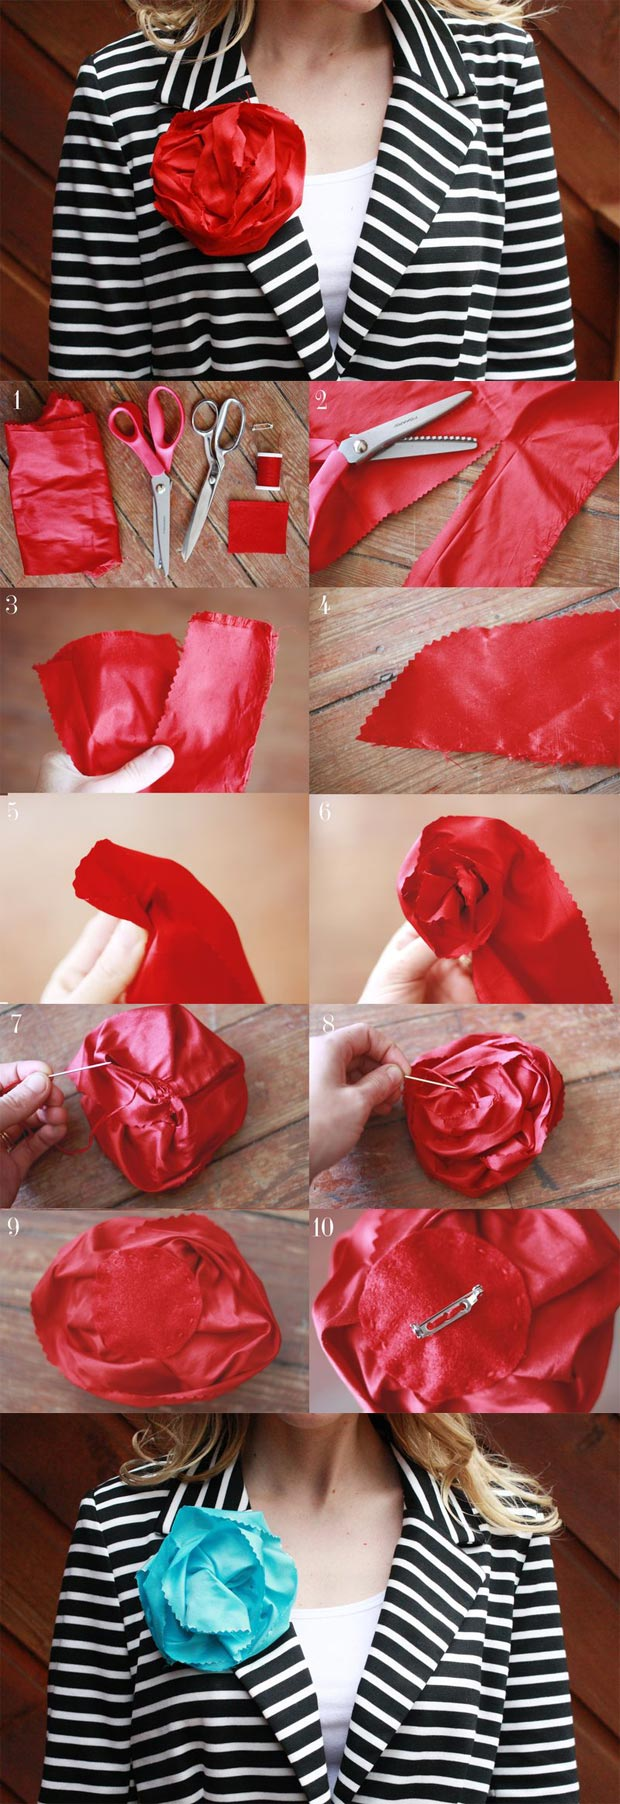 17 Interesting DIY Fashion Ideas